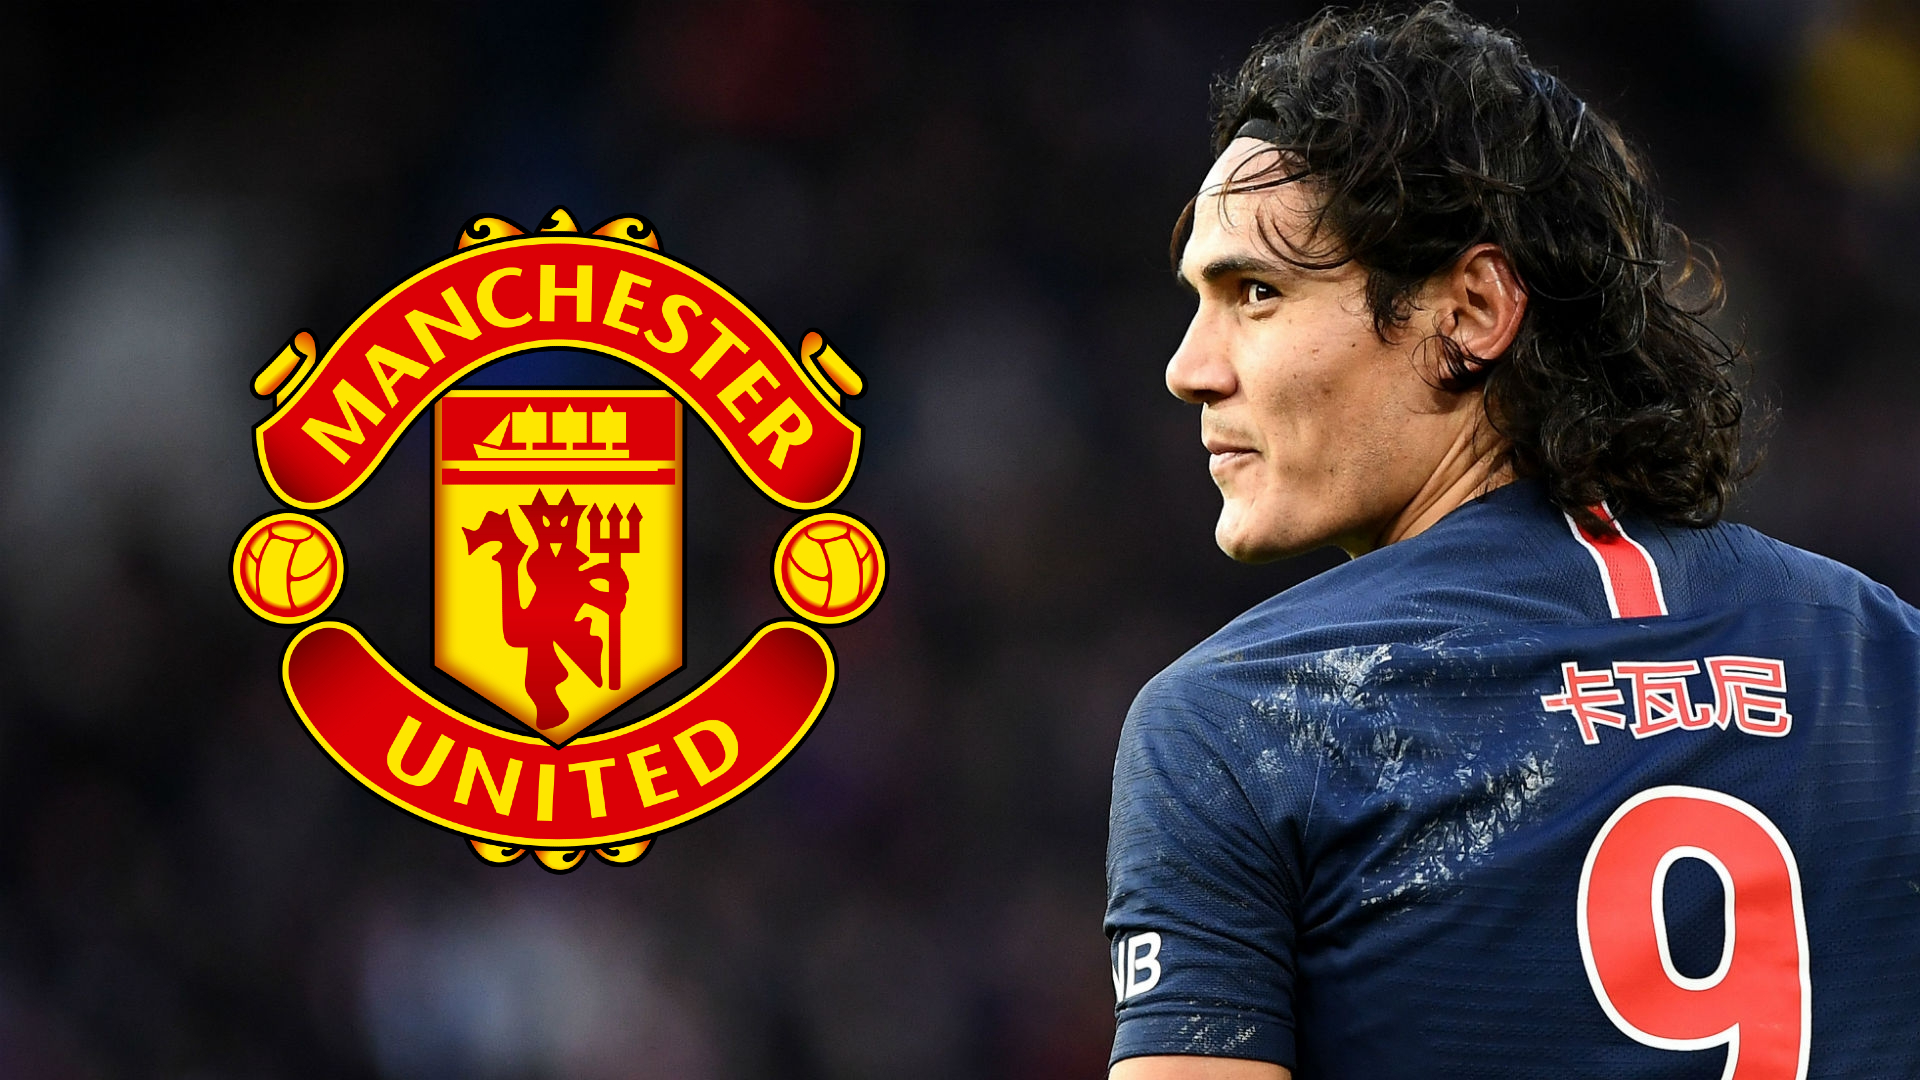 cavani reveals great pride after being handed no 7 shirt at manchester united goal com cavani reveals great pride after